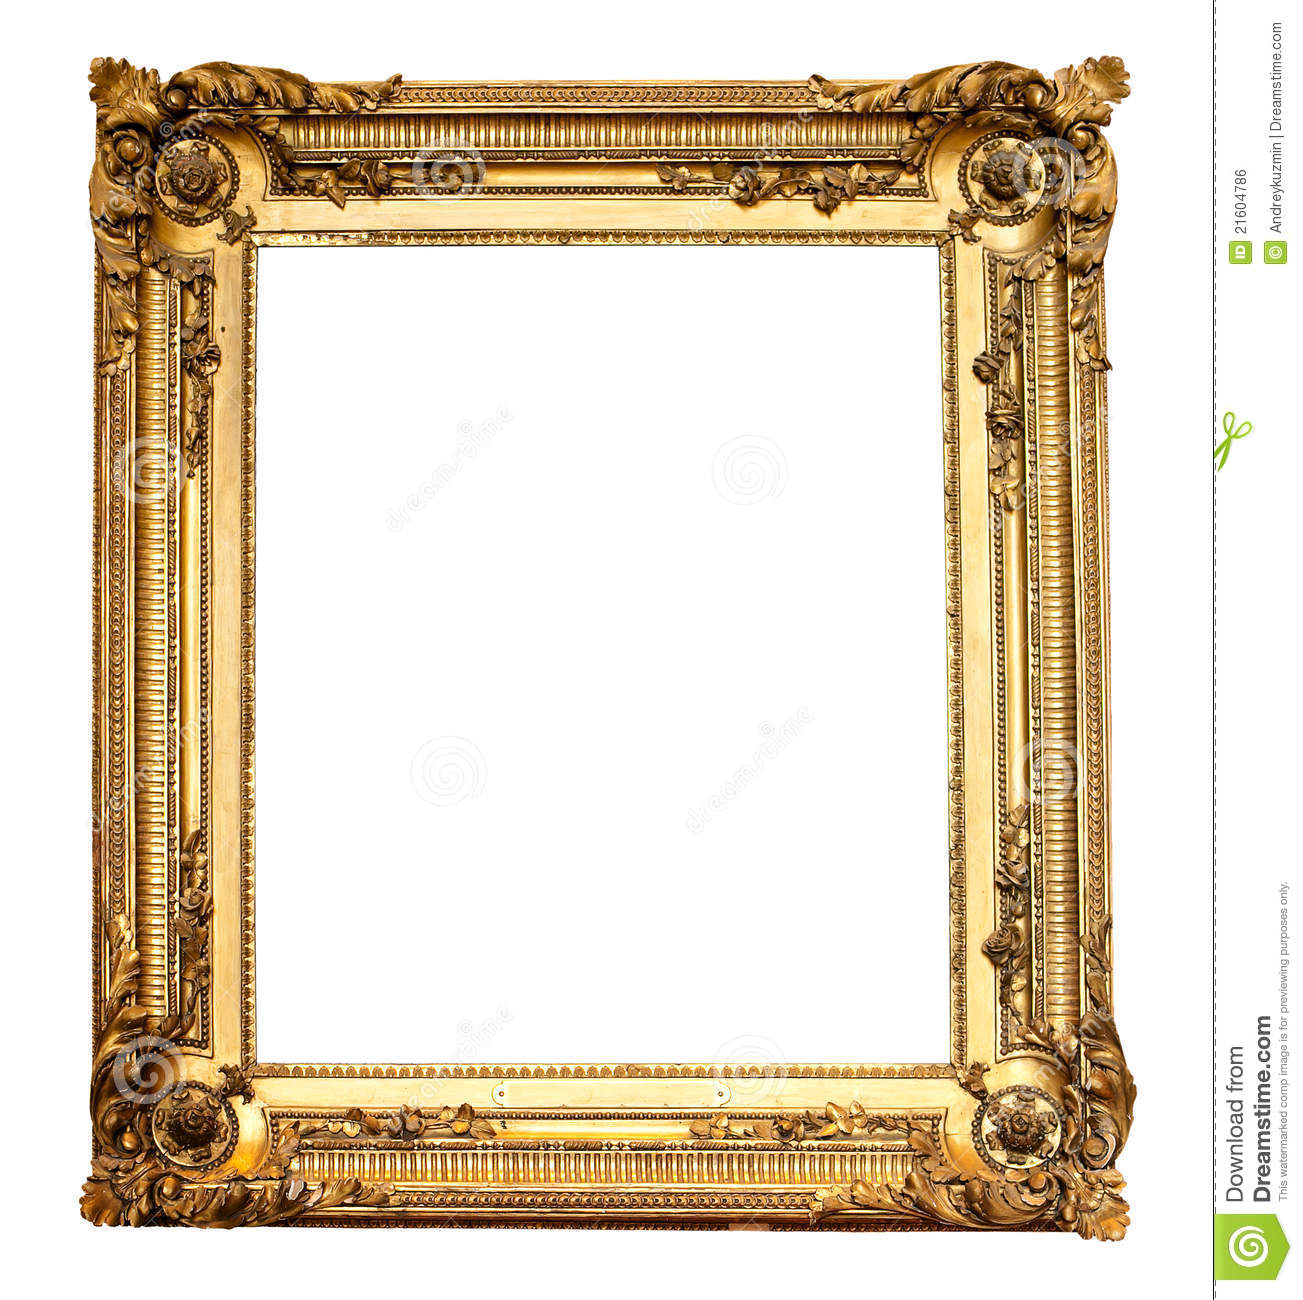 A5 Fotolijst Real Old Antique Gold Frame Isolated Royalty Free Stock